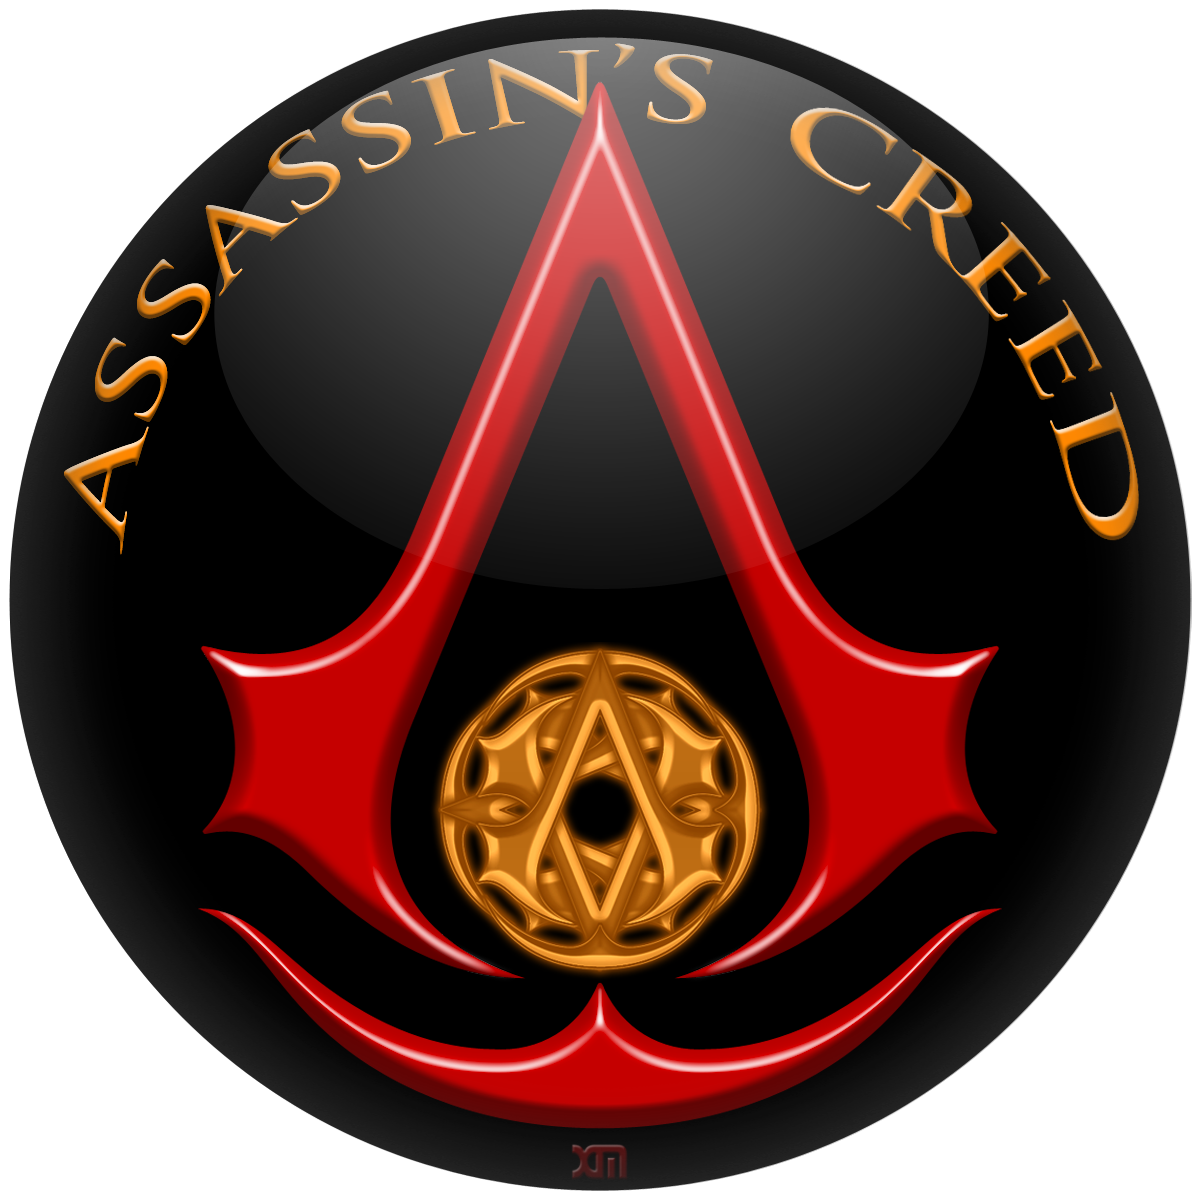 Assassin's Creed (icon) by xenomorph1138